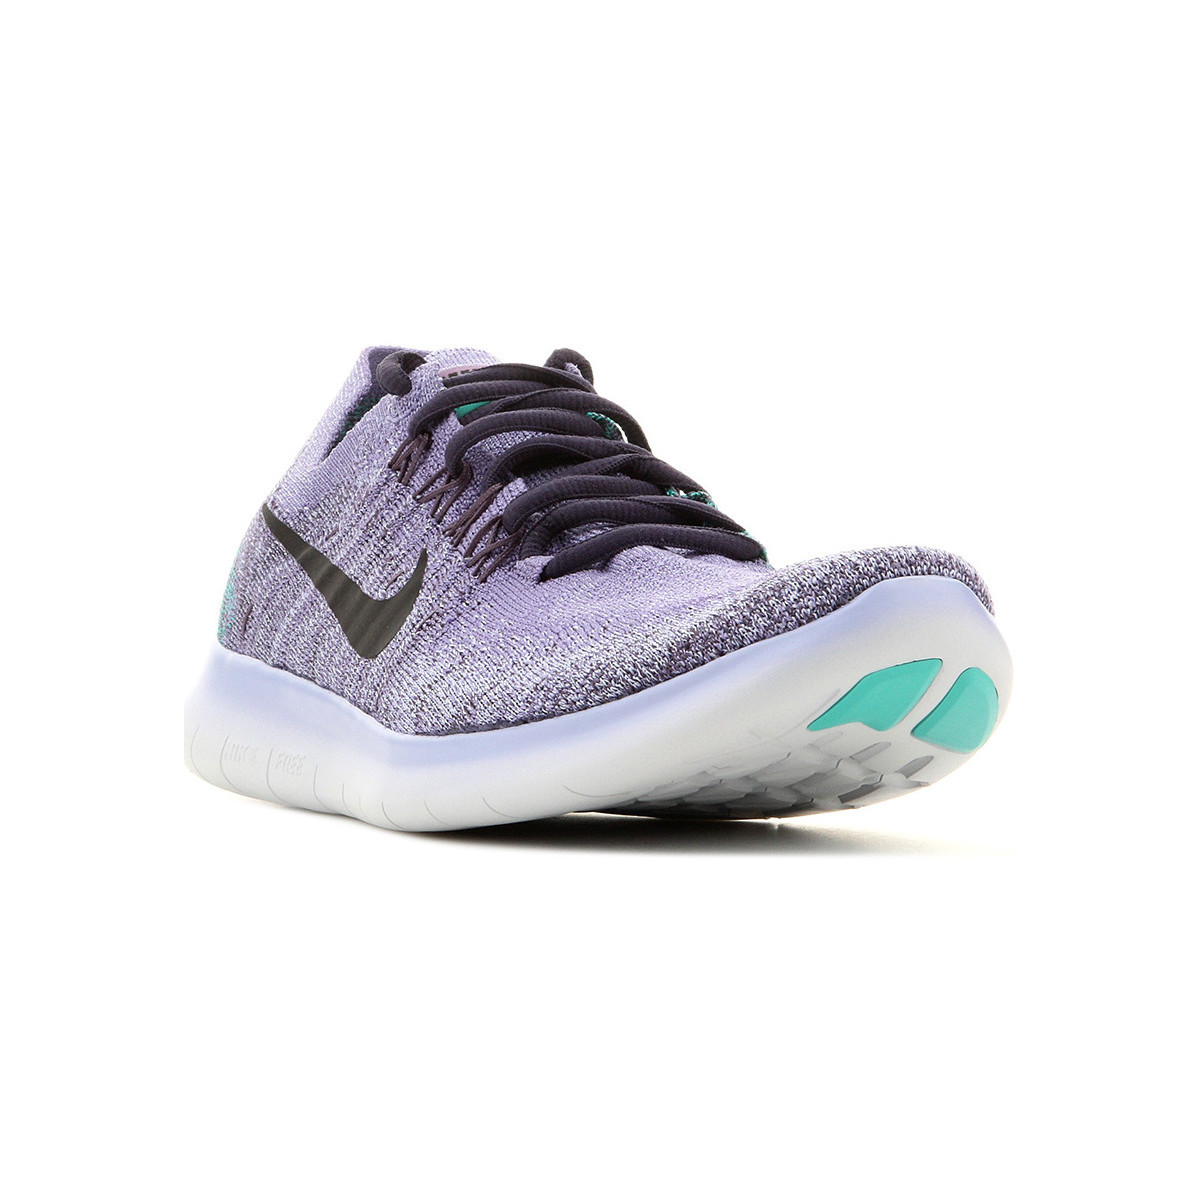 uk availability 8e1a3 fbec6 Nike Wmns Free RN Flyknit 2017 880844 501 women's Running Trainers in Purple